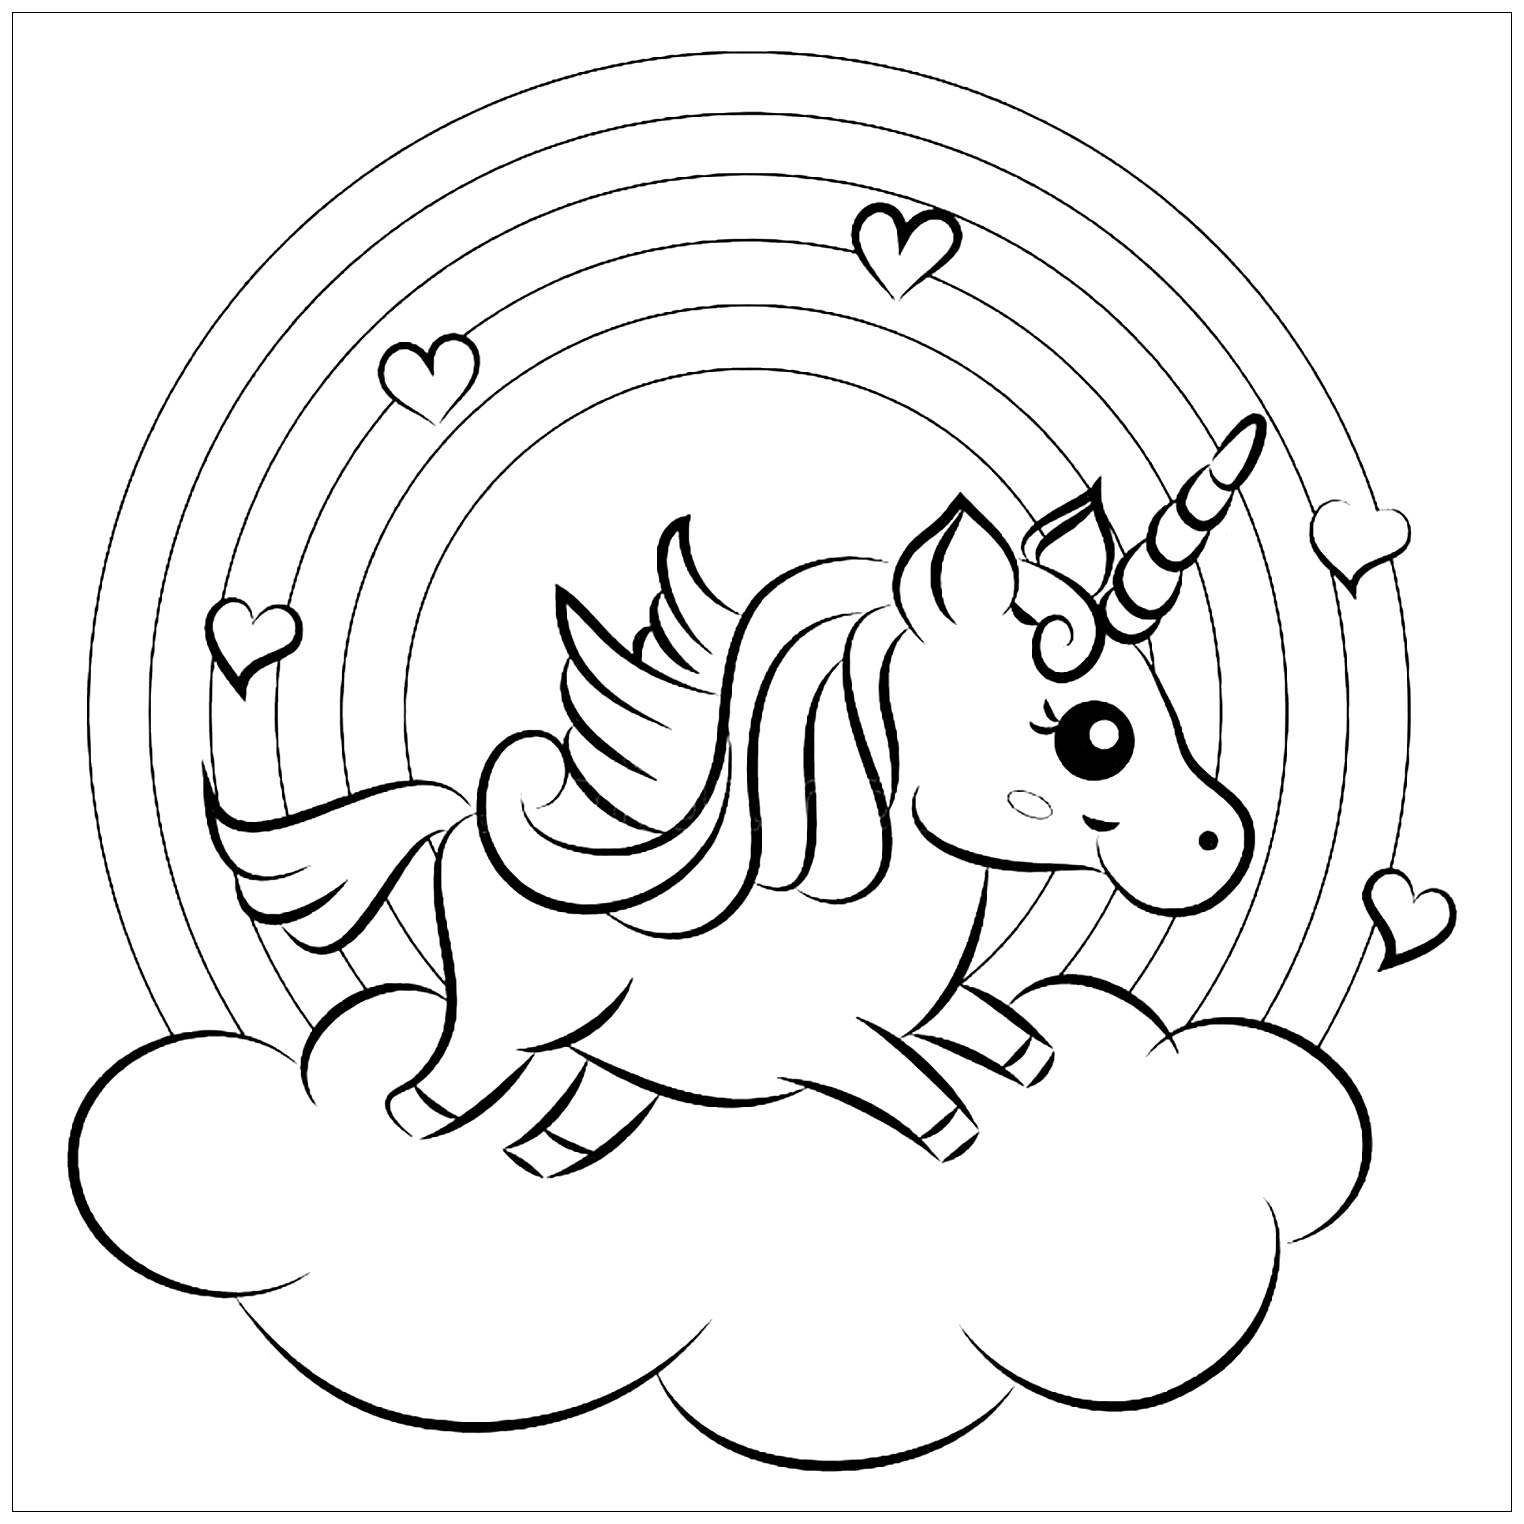 unicorn to color print download unicorn coloring pages for children color unicorn to